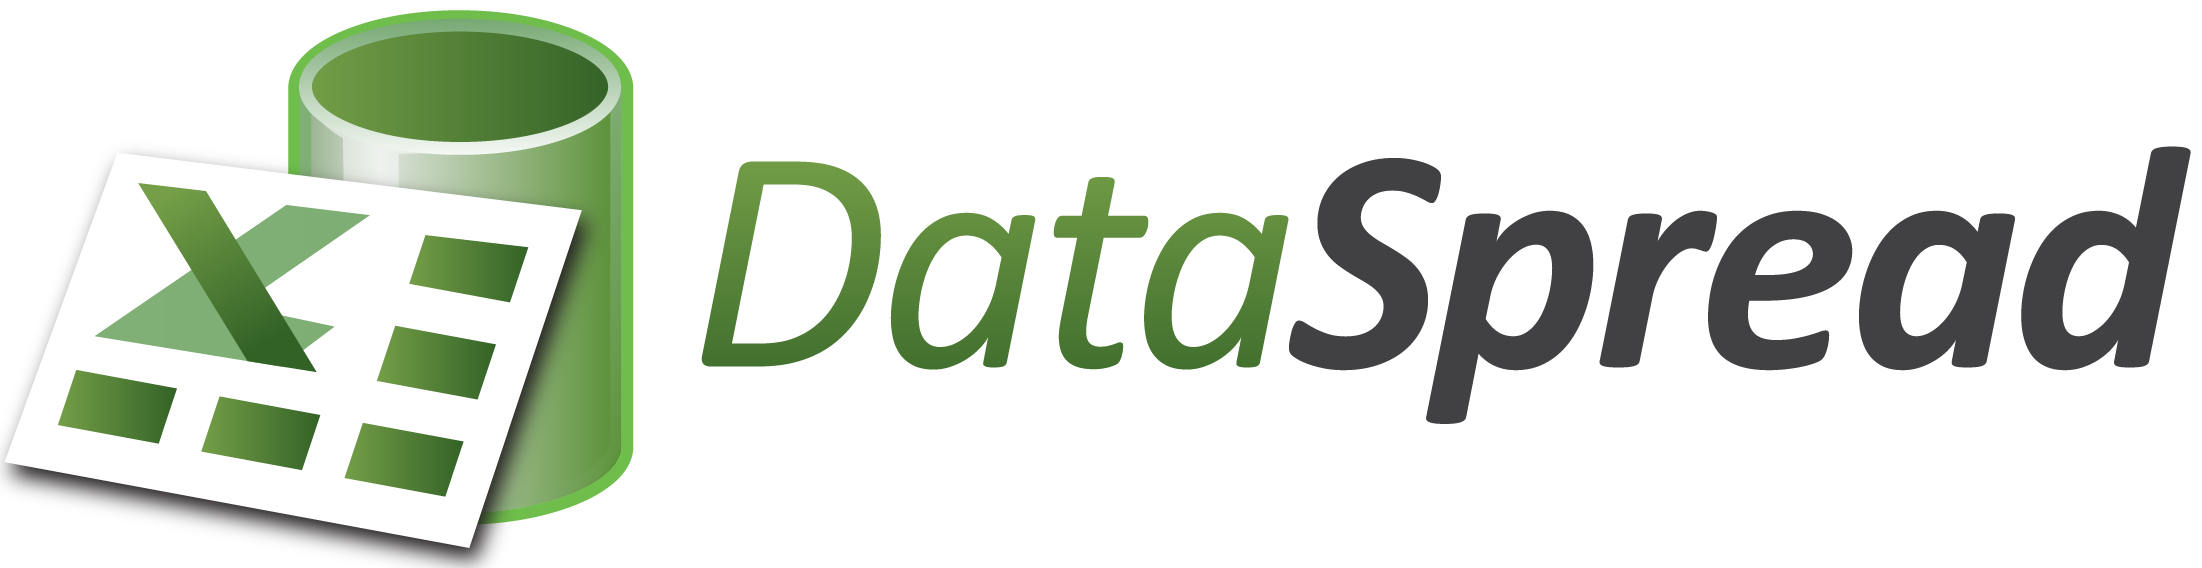 dataspread-fiverr2-cropped